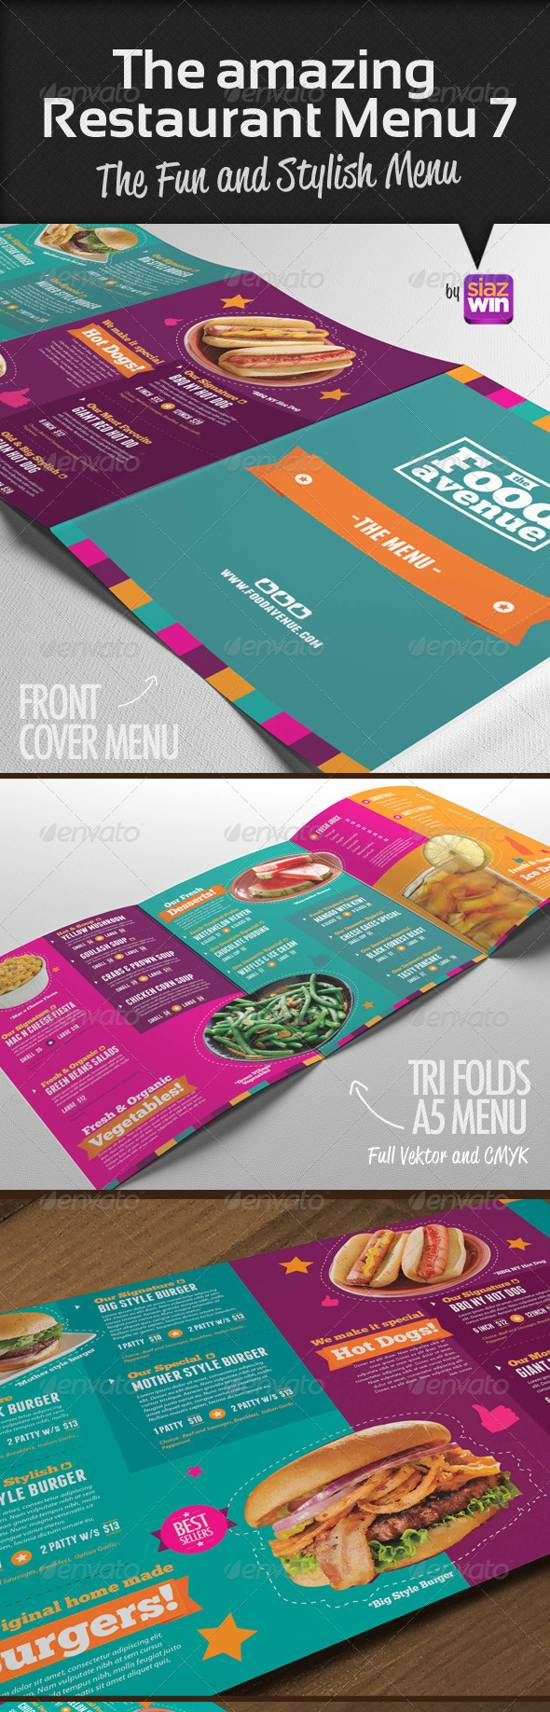 amazing food menu template